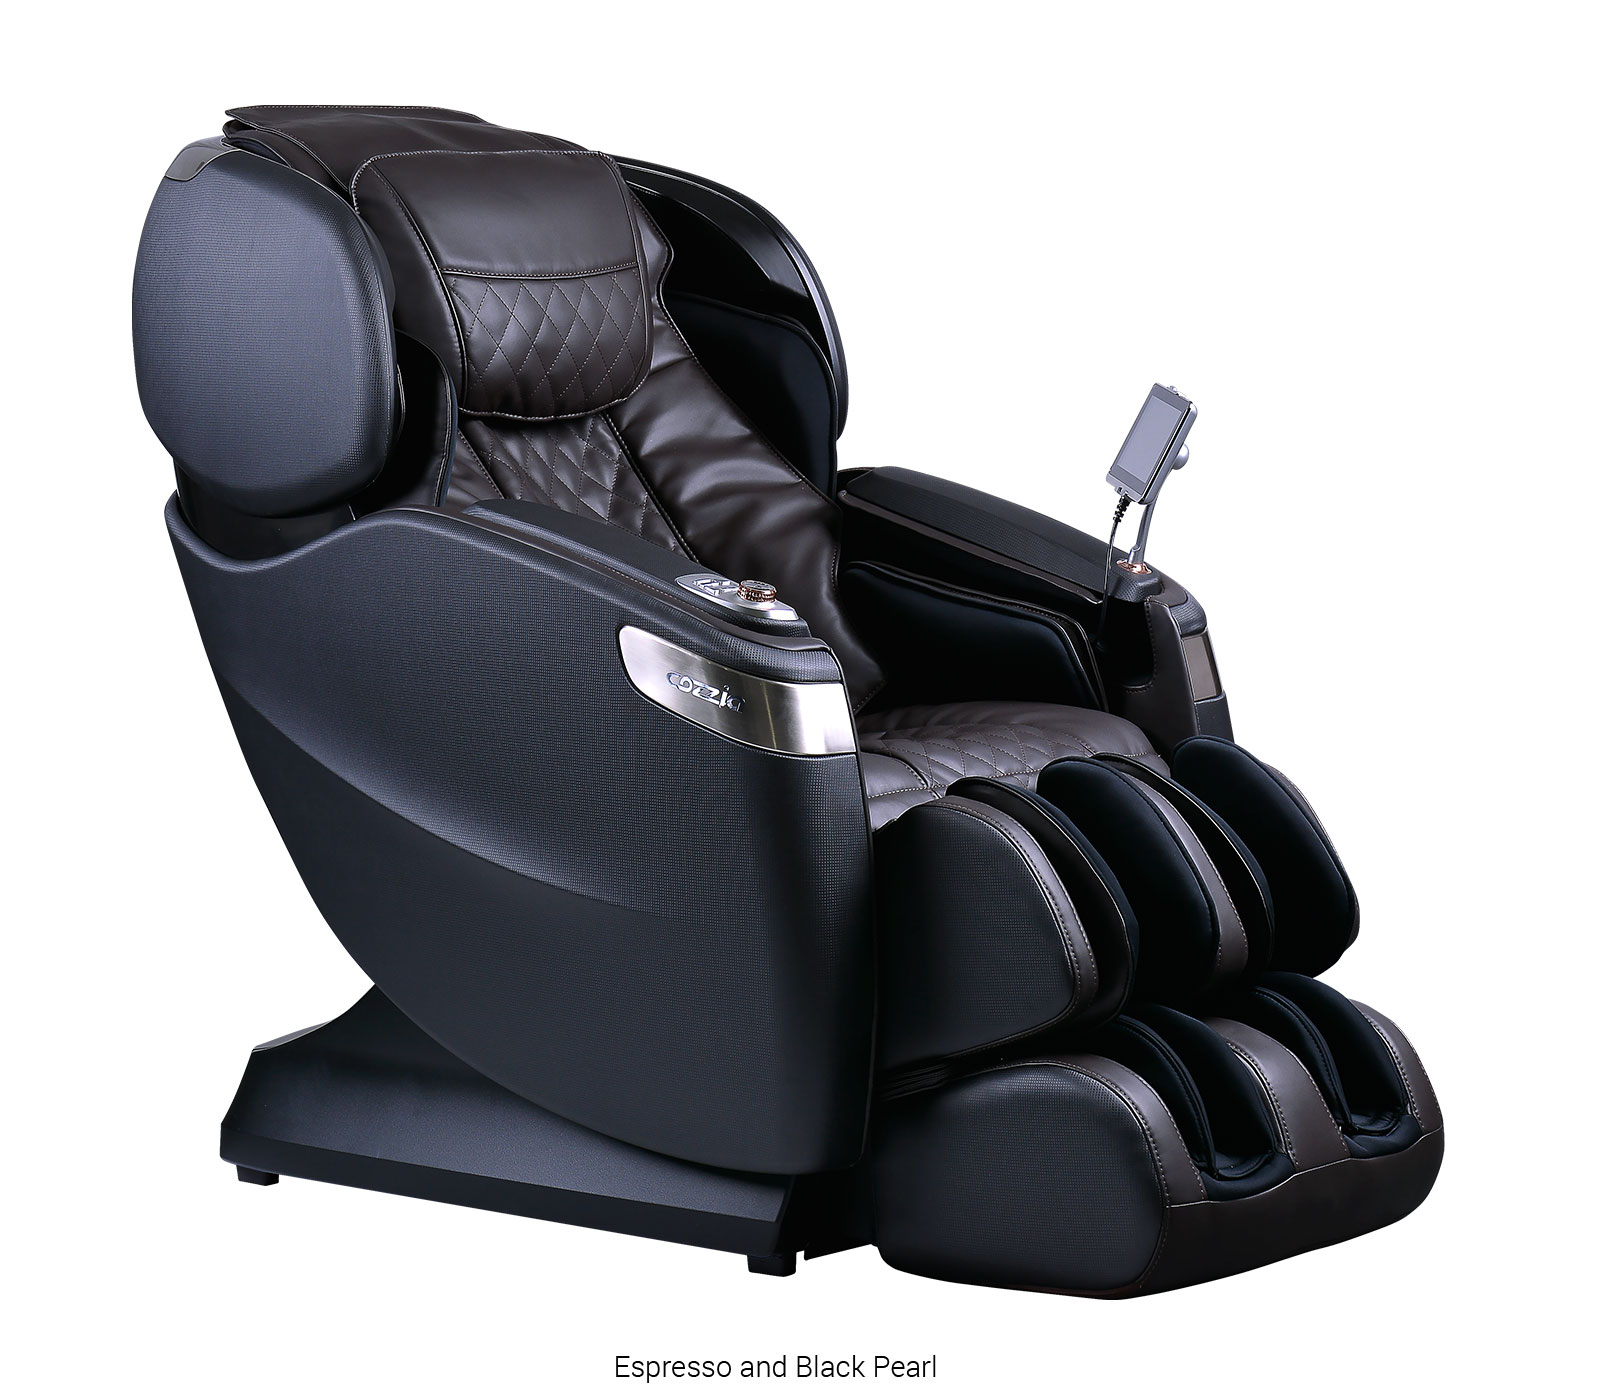 3 Factors to Consider When Buying Massage Chairs